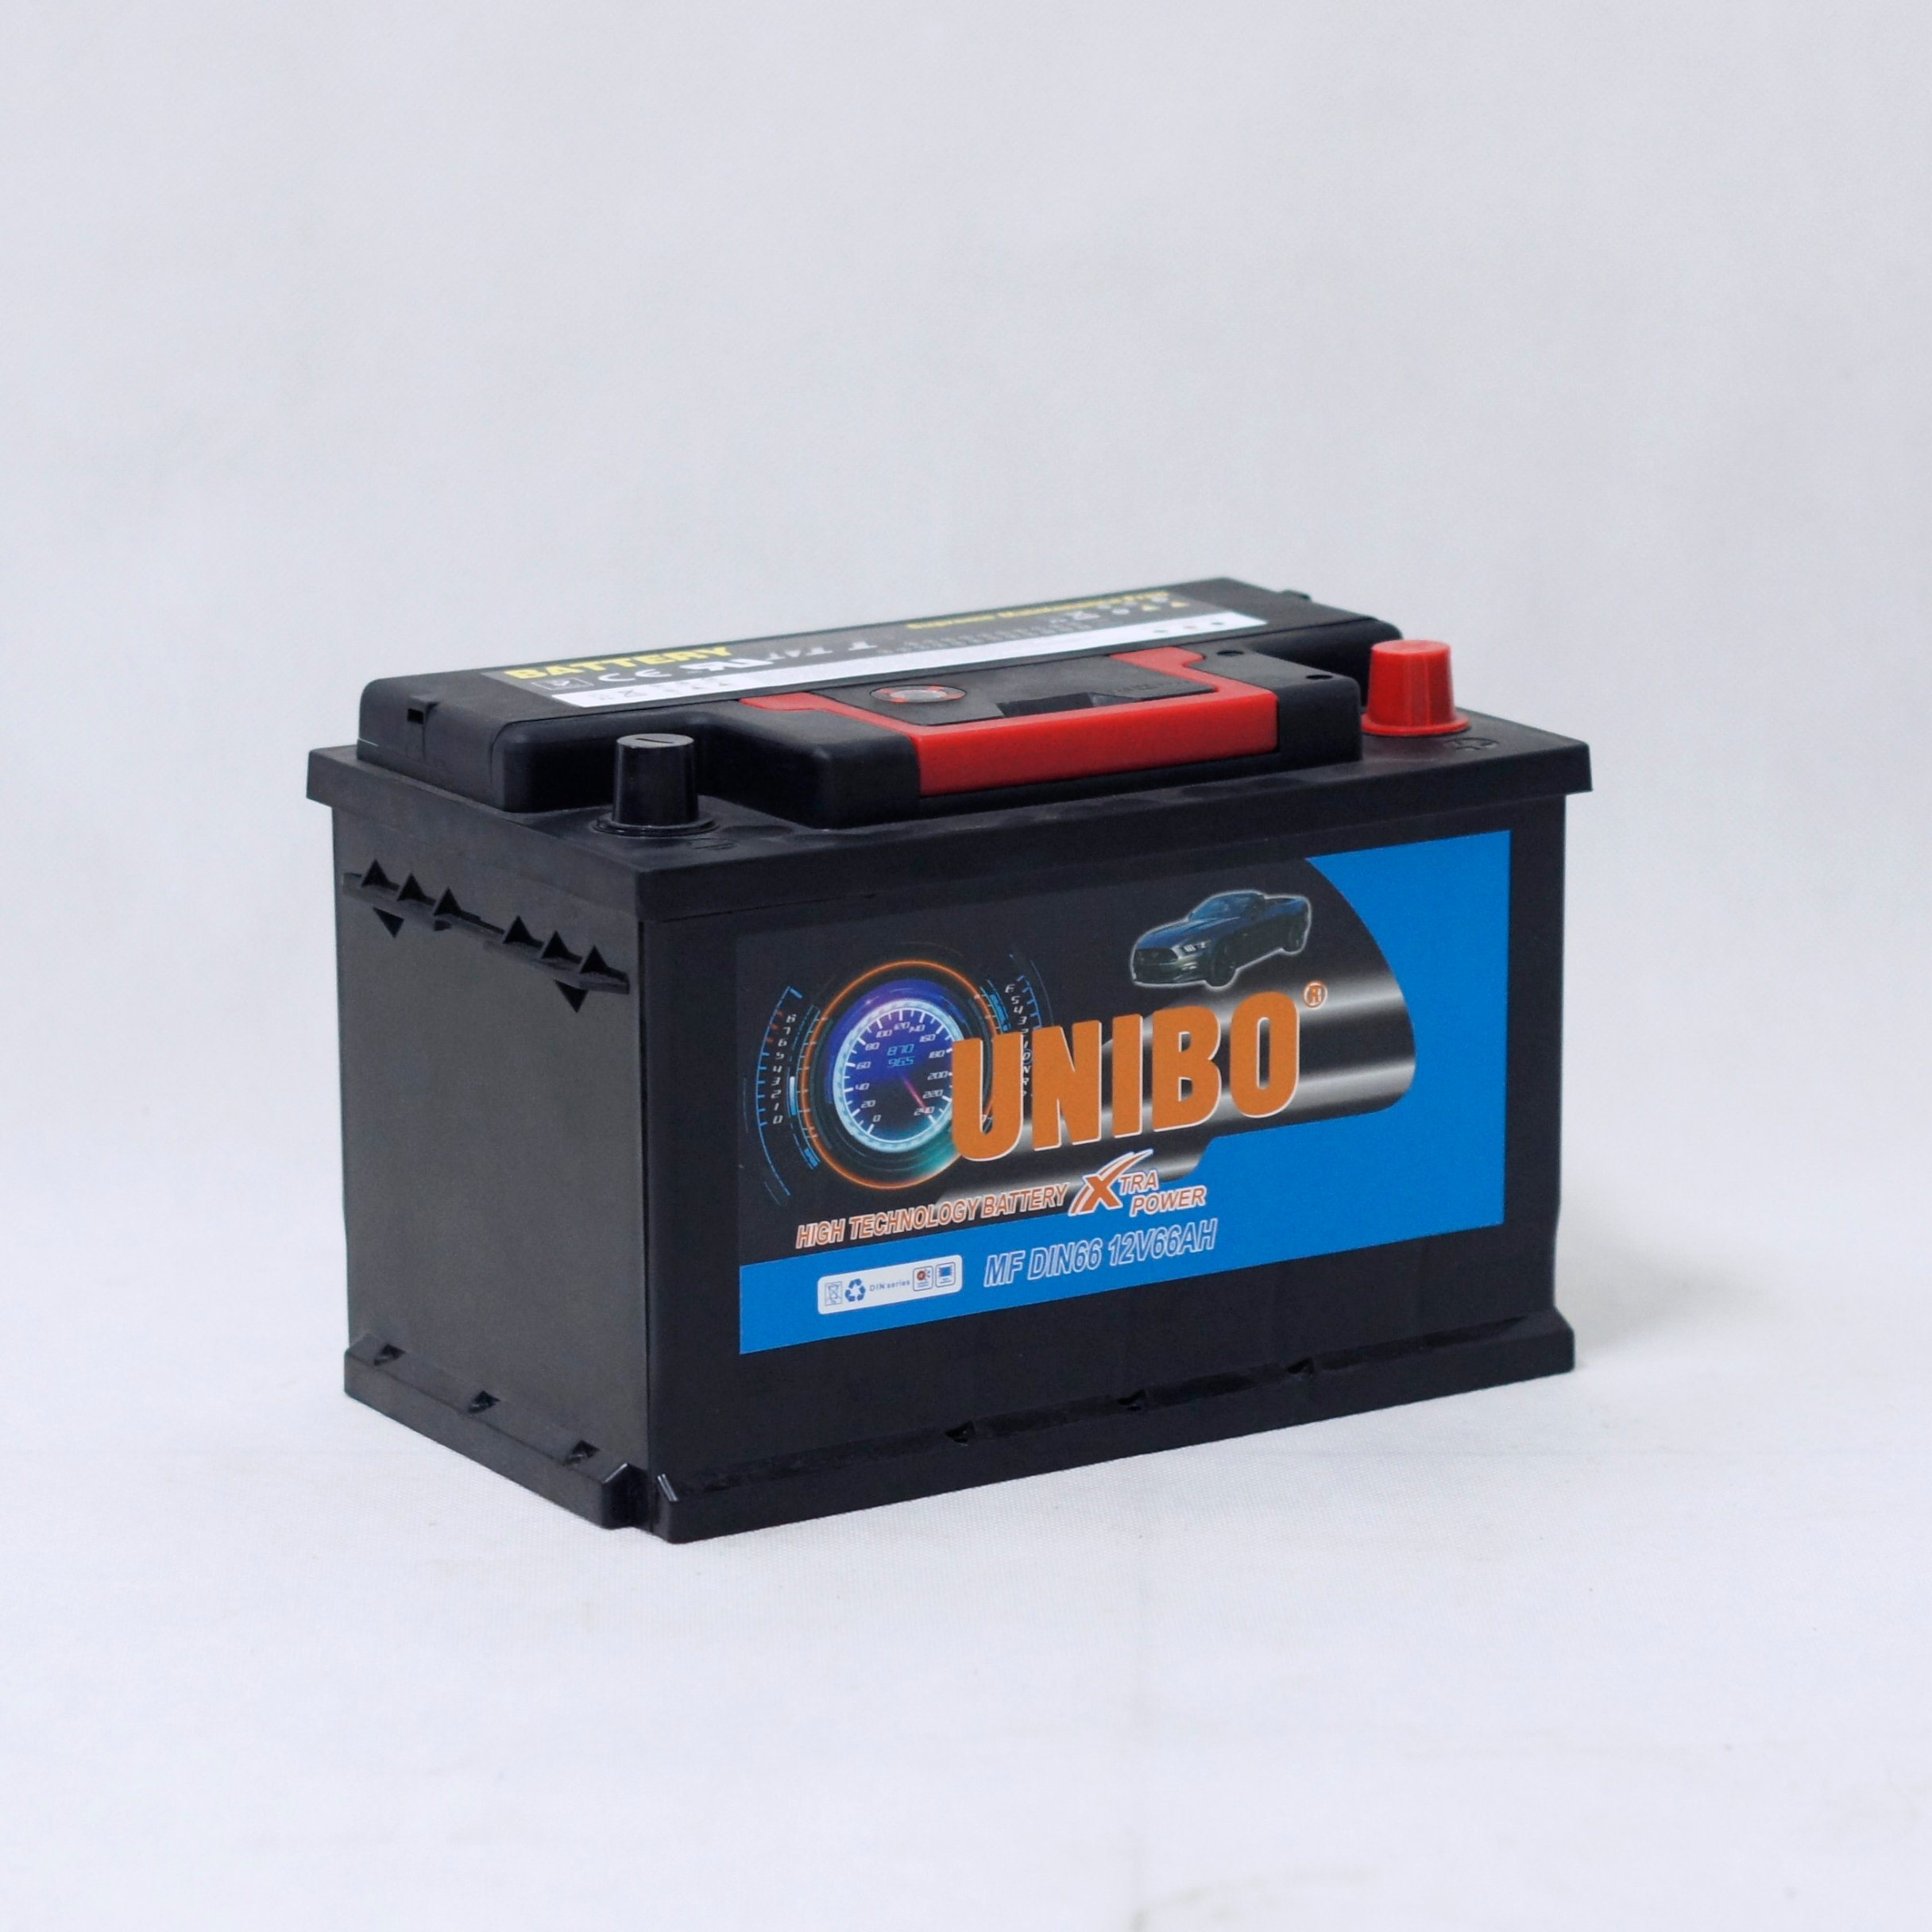 Maintenance Free Auto Battery DIN66 12V66ah High Performance Car Battery